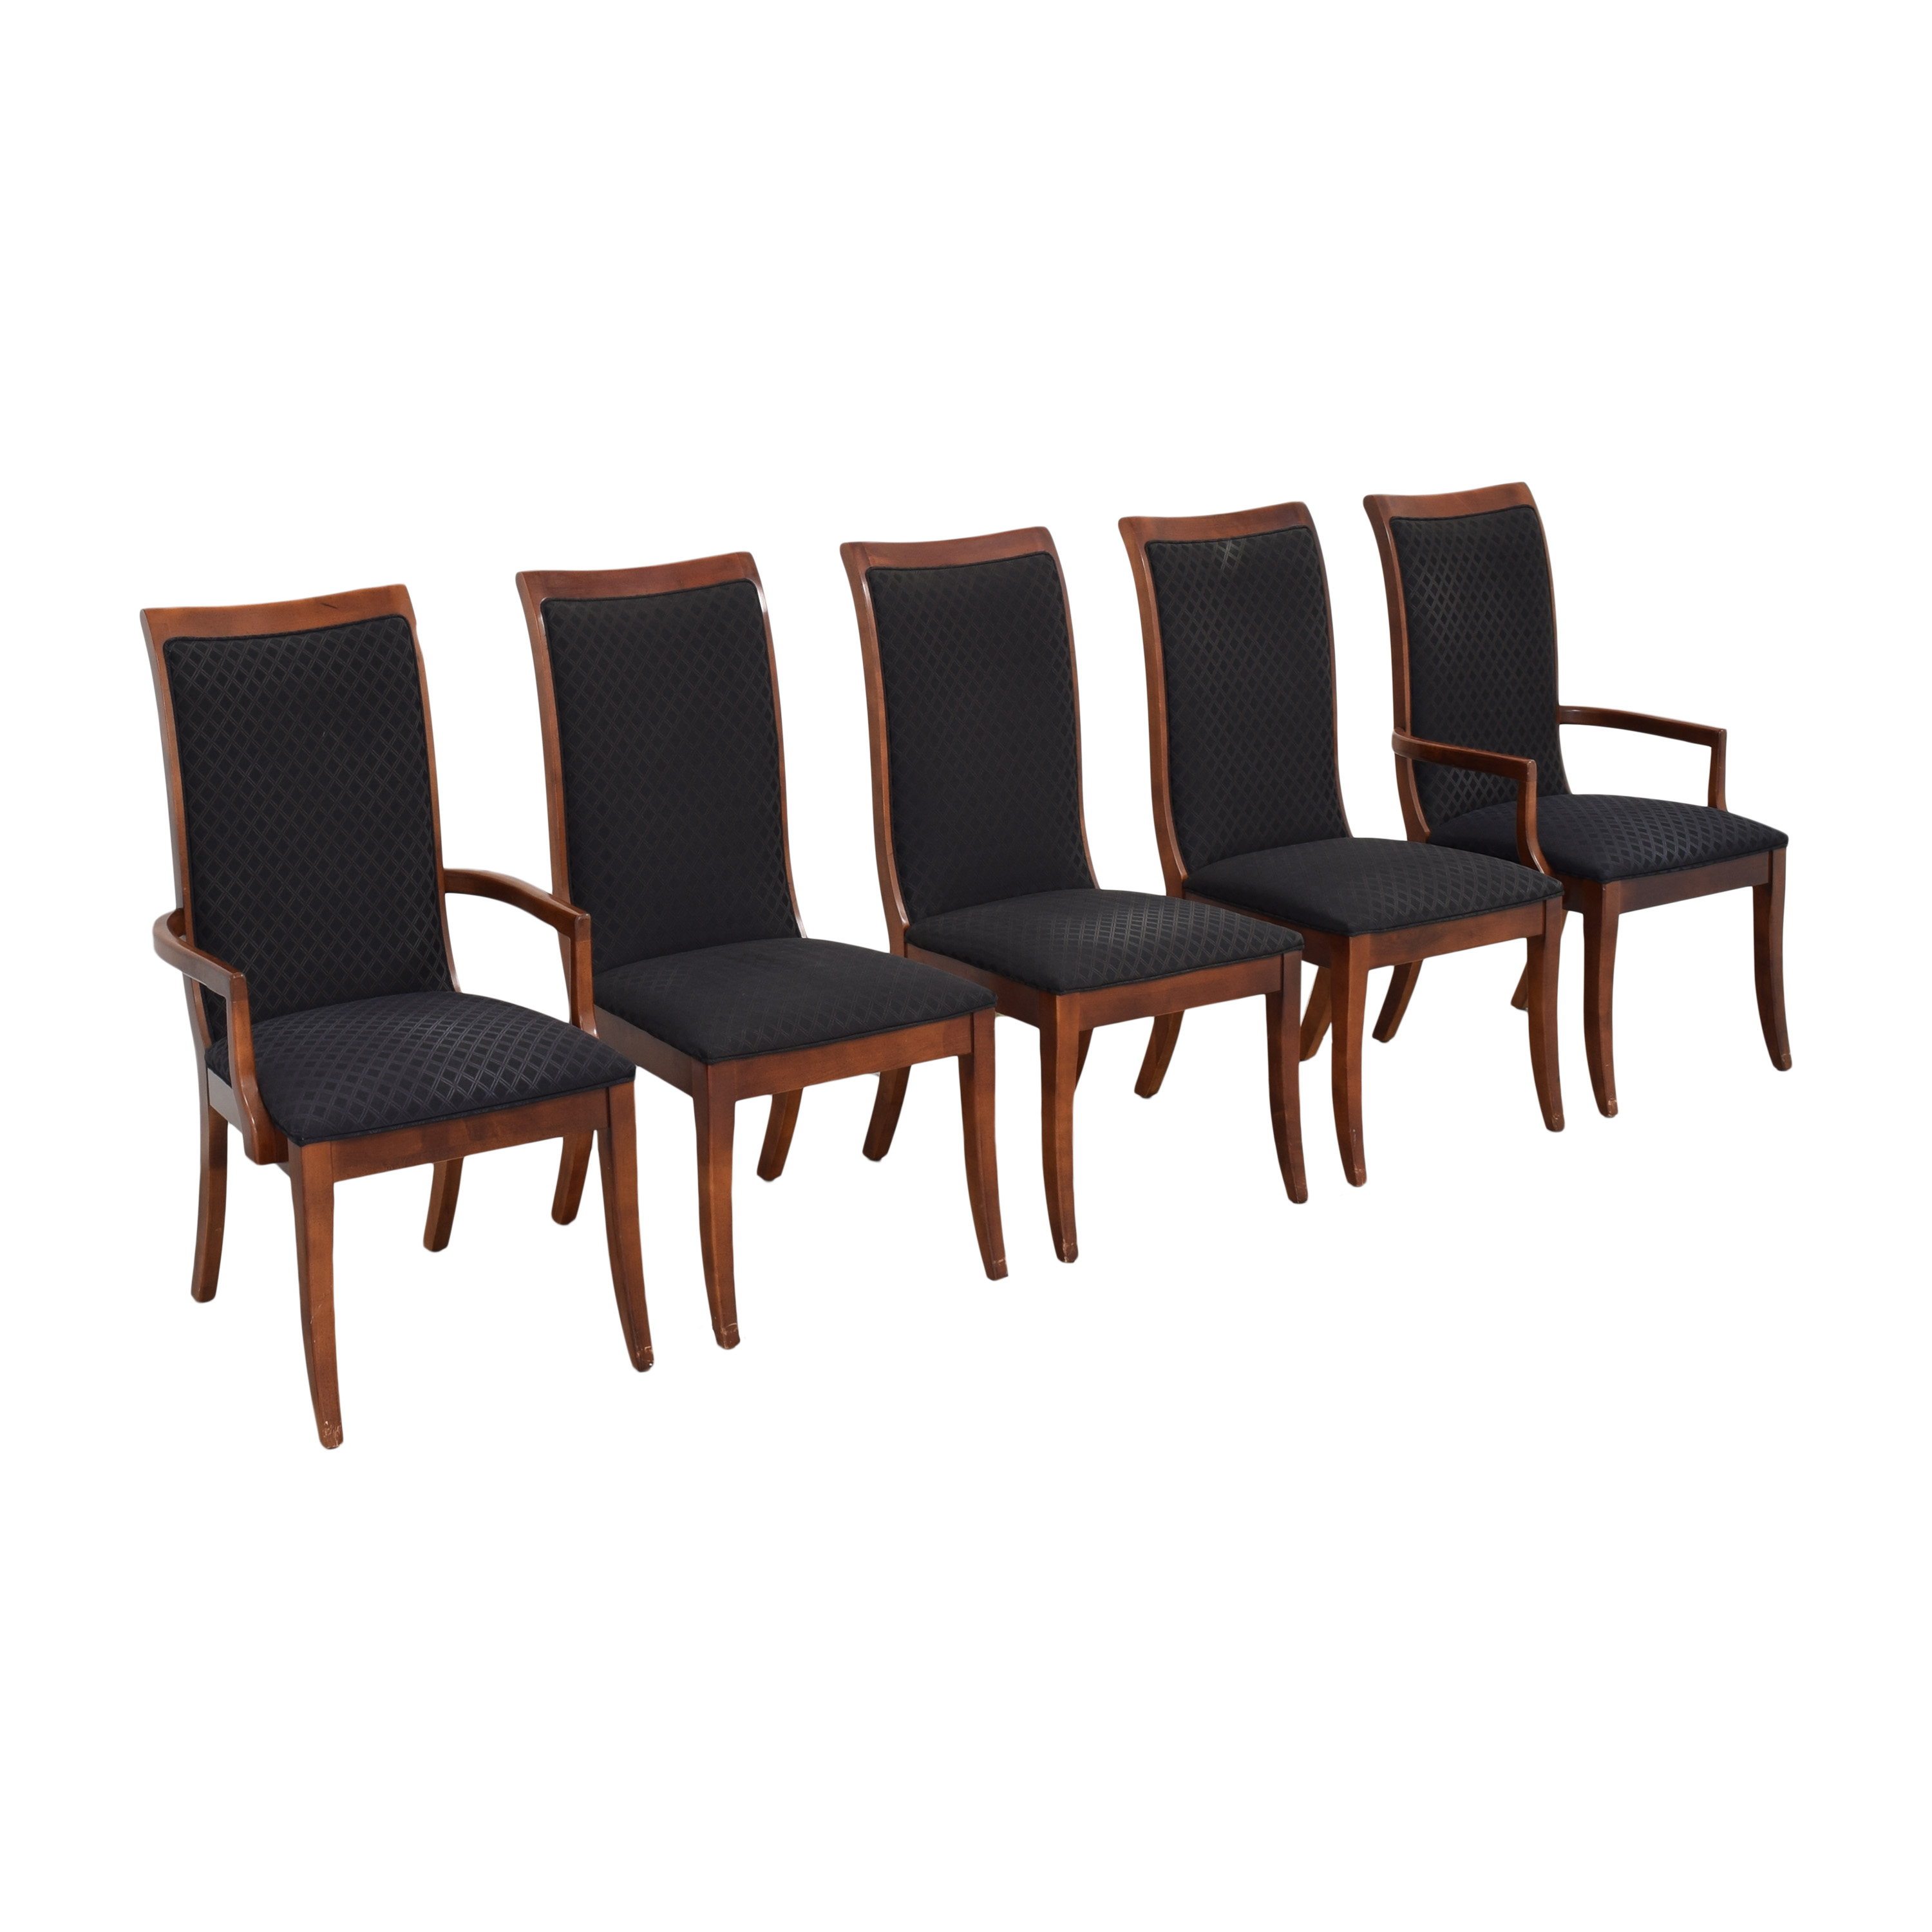 Huffman Koos Upholstered Dining Chairs / Dining Chairs